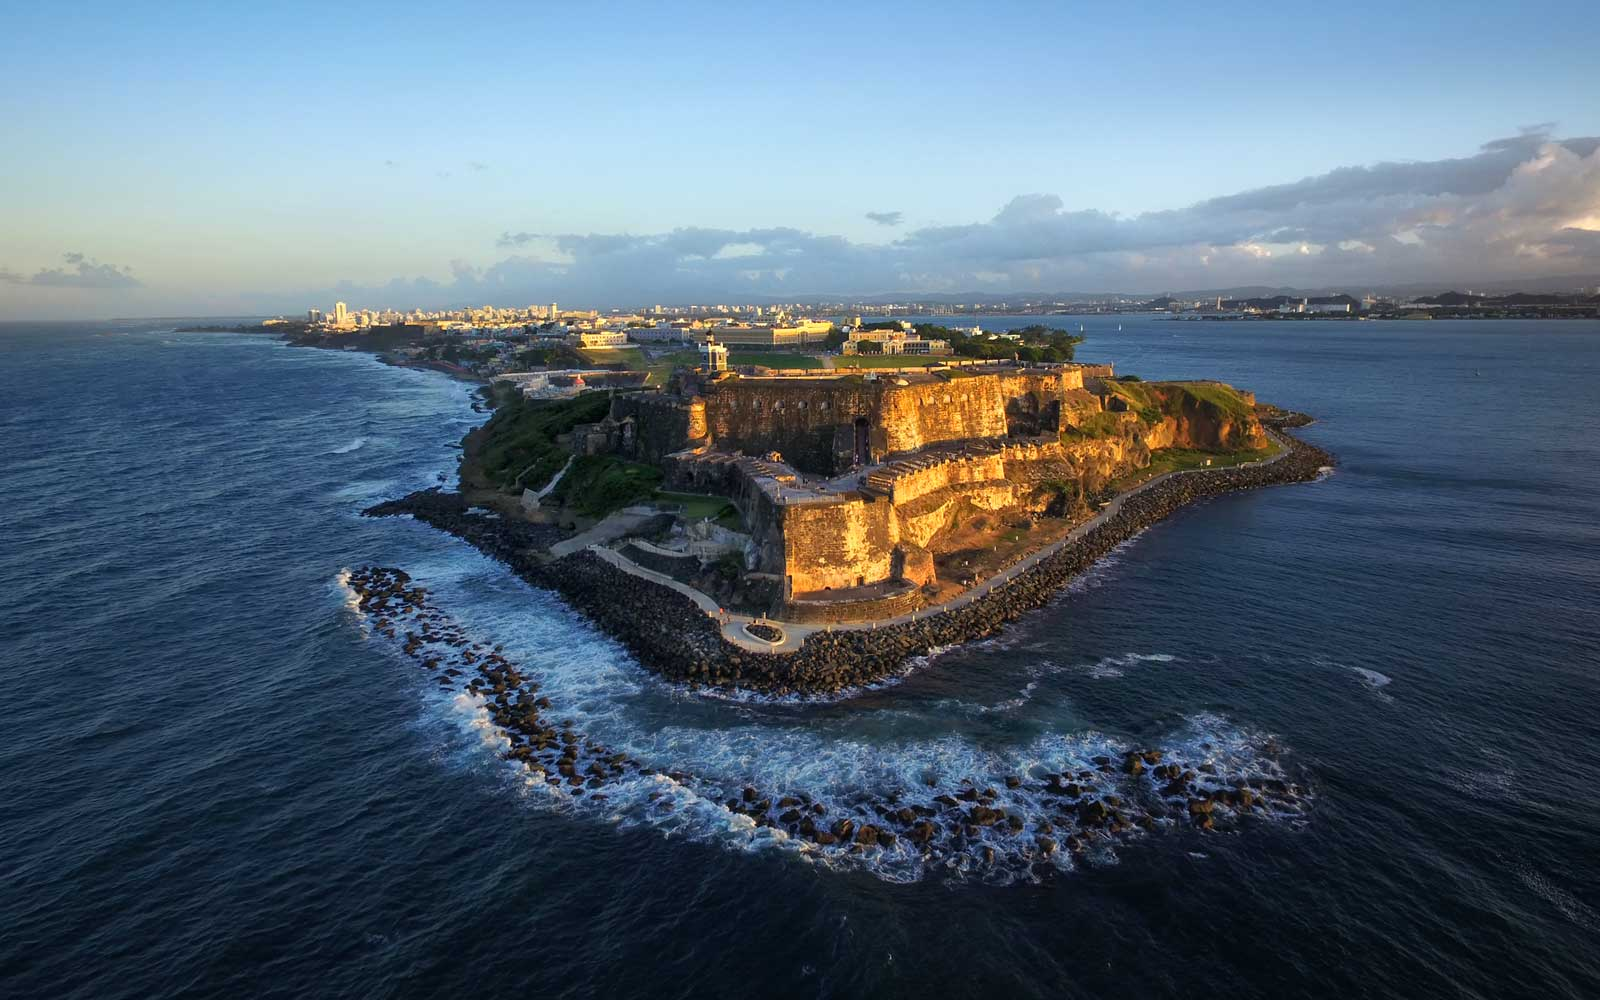 Puerto Rico Voted to Become the 51st State. So What Happens Now?